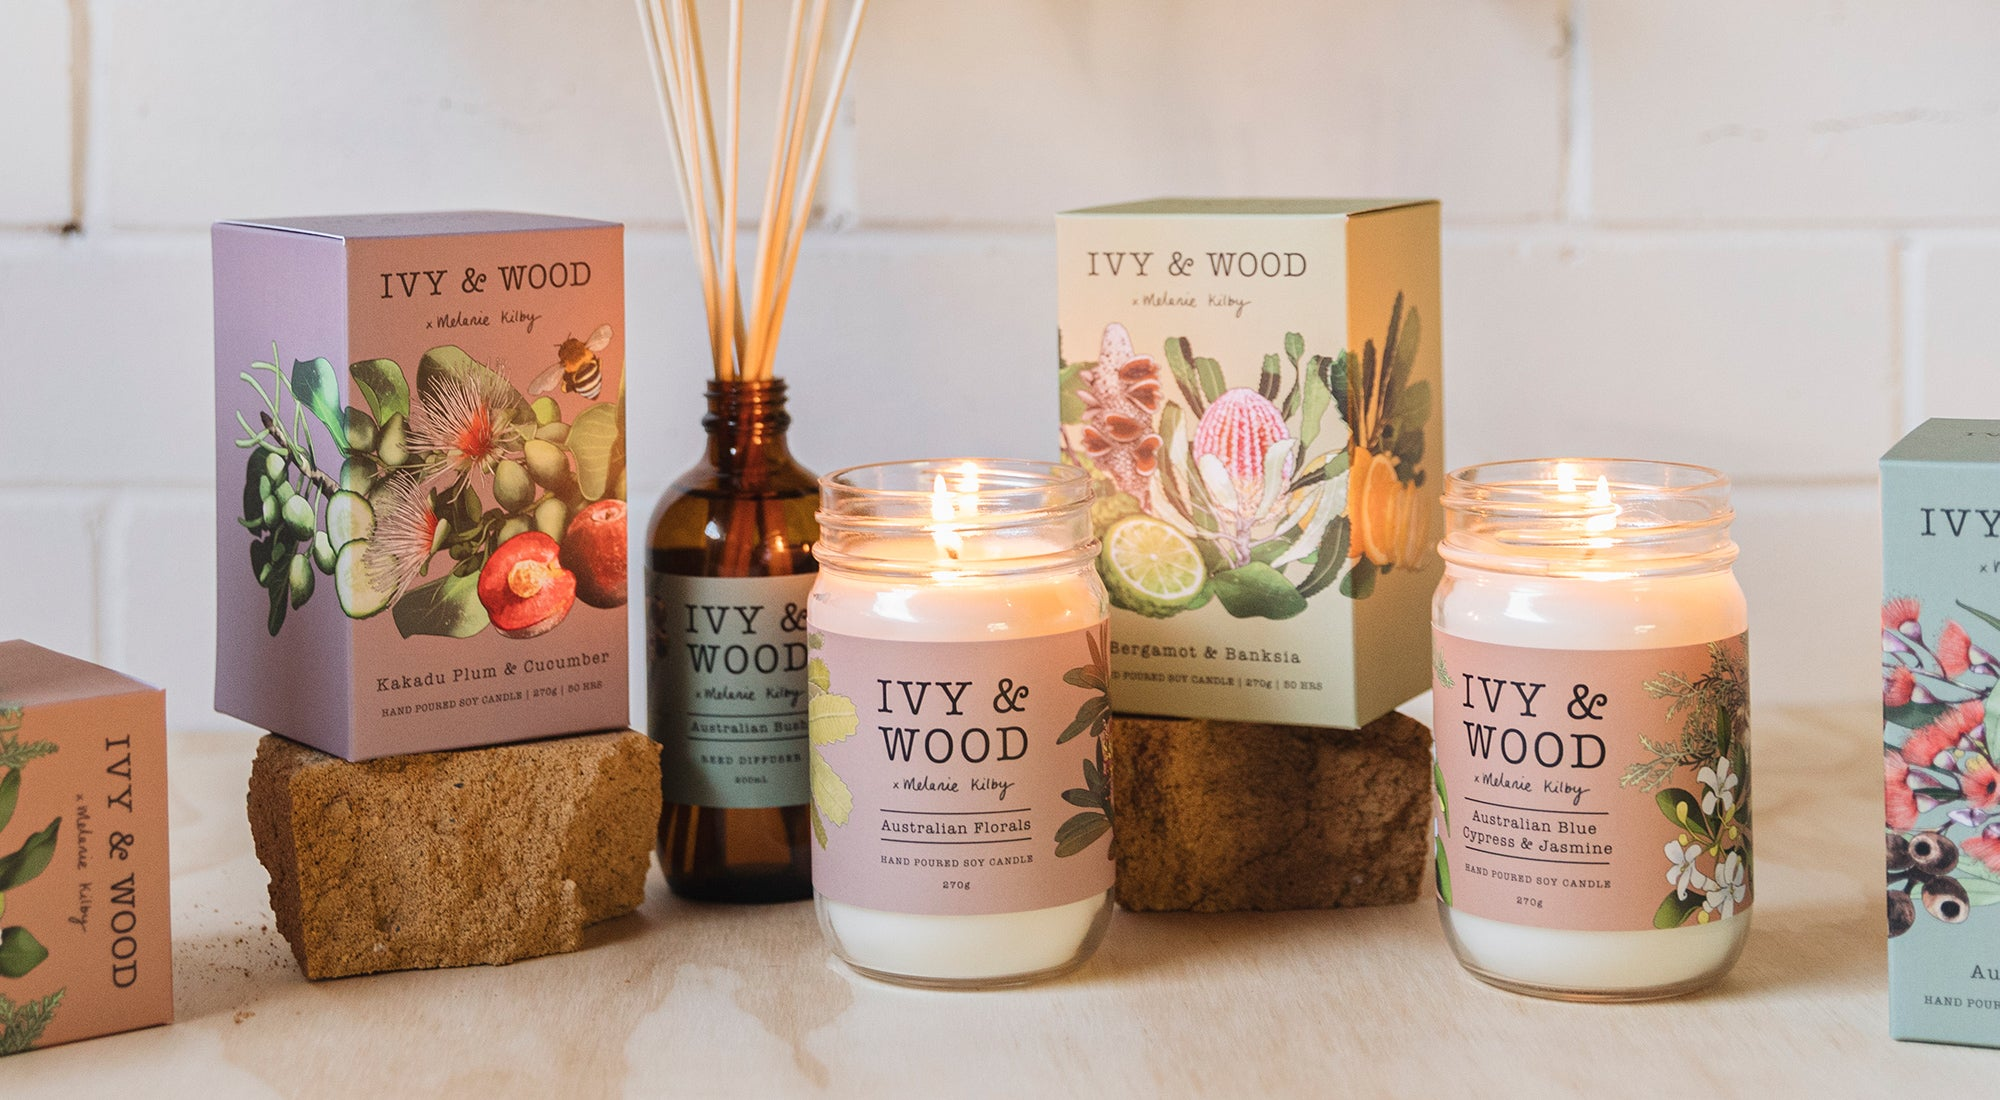 Ivy & Wood collection